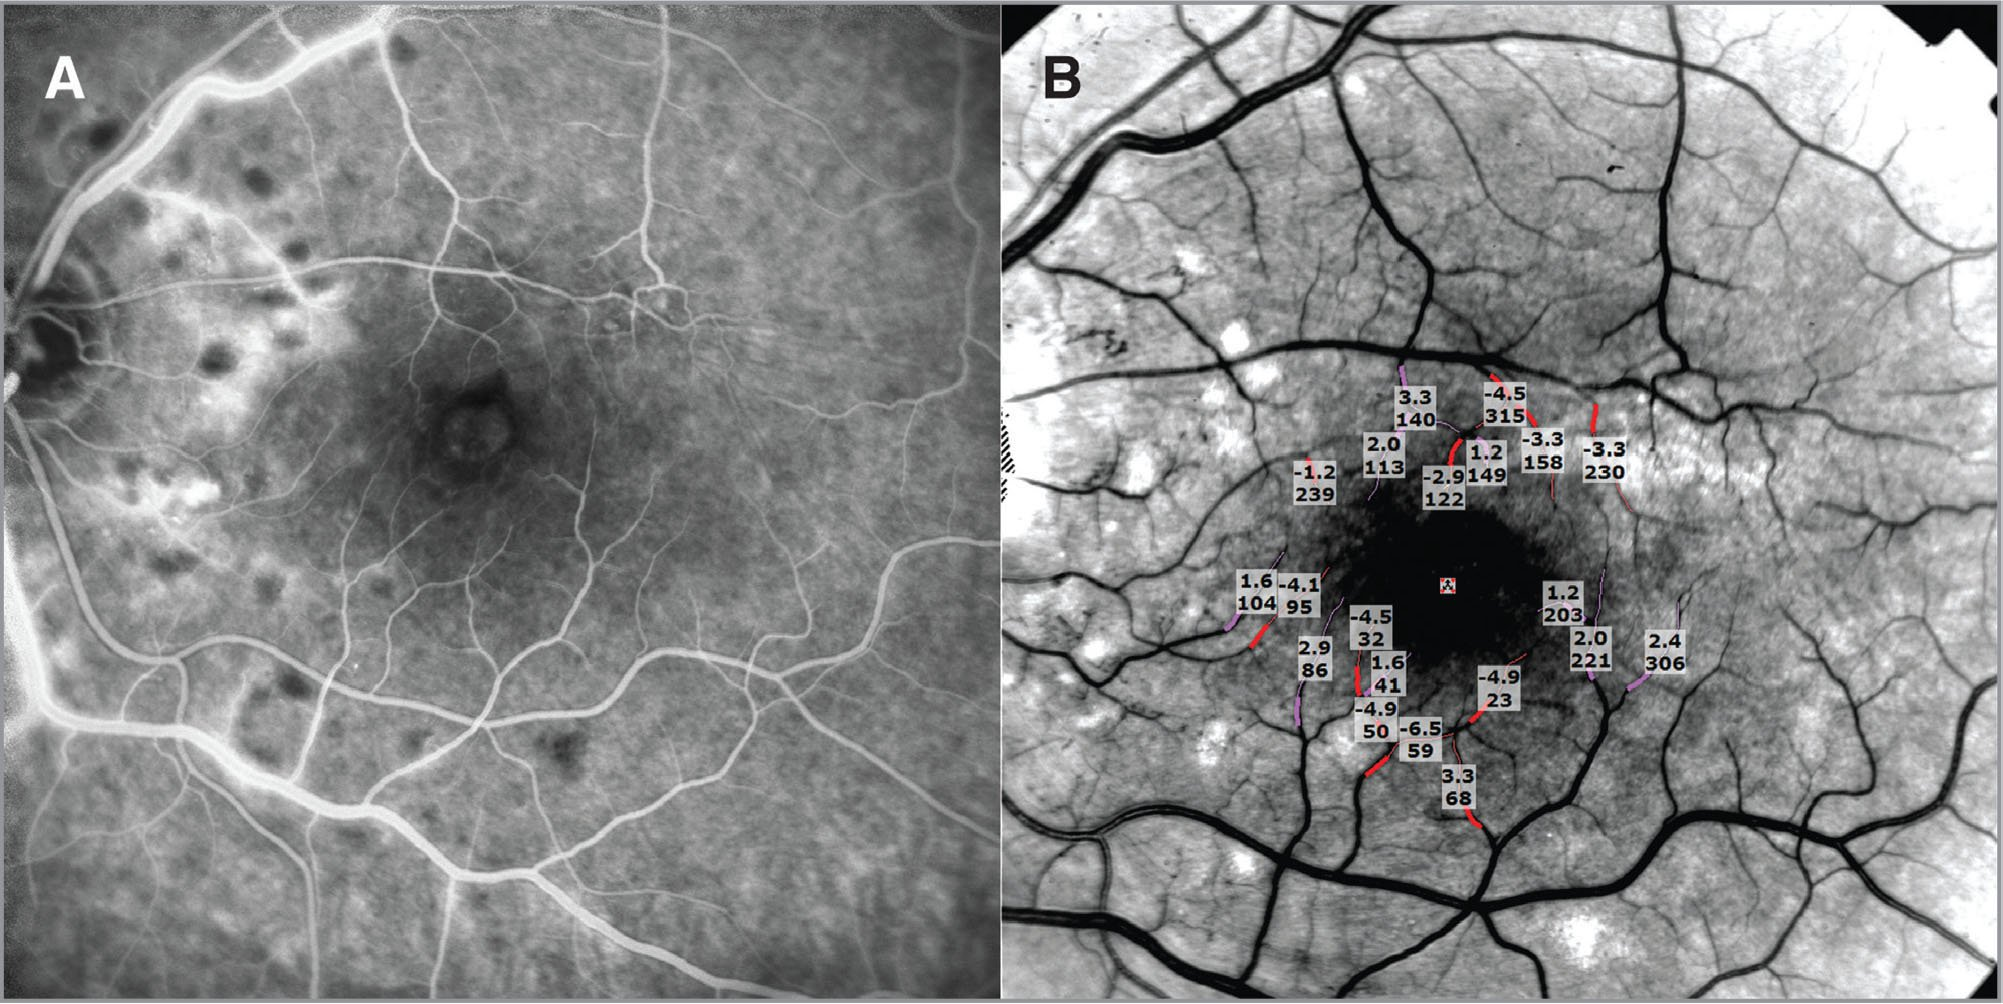 A 35° Retinal Functional Imager (RFI) image in Patient 8, who presented with visual loss in the left eye after having had a bevacizumab injection elsewhere, but the diagnosis was not clearly apparent. There was mild macular edema, but no intraretinal hemorrhage and only a suggestion of vascular dilation. He received two more cycles of bevacizumab, with slight visual improvement and resolution of the macular edema. (A) Demonstrates the late recirculation fluorescein angiogram phase that failed to evidence parafoveal ischemic changes. (B) Depicts the RFI vessel segmentation obtained on the same day that showed that mean arteriolar and venular flow velocities were about two-thirds and one-half of the healthy group, respectively.